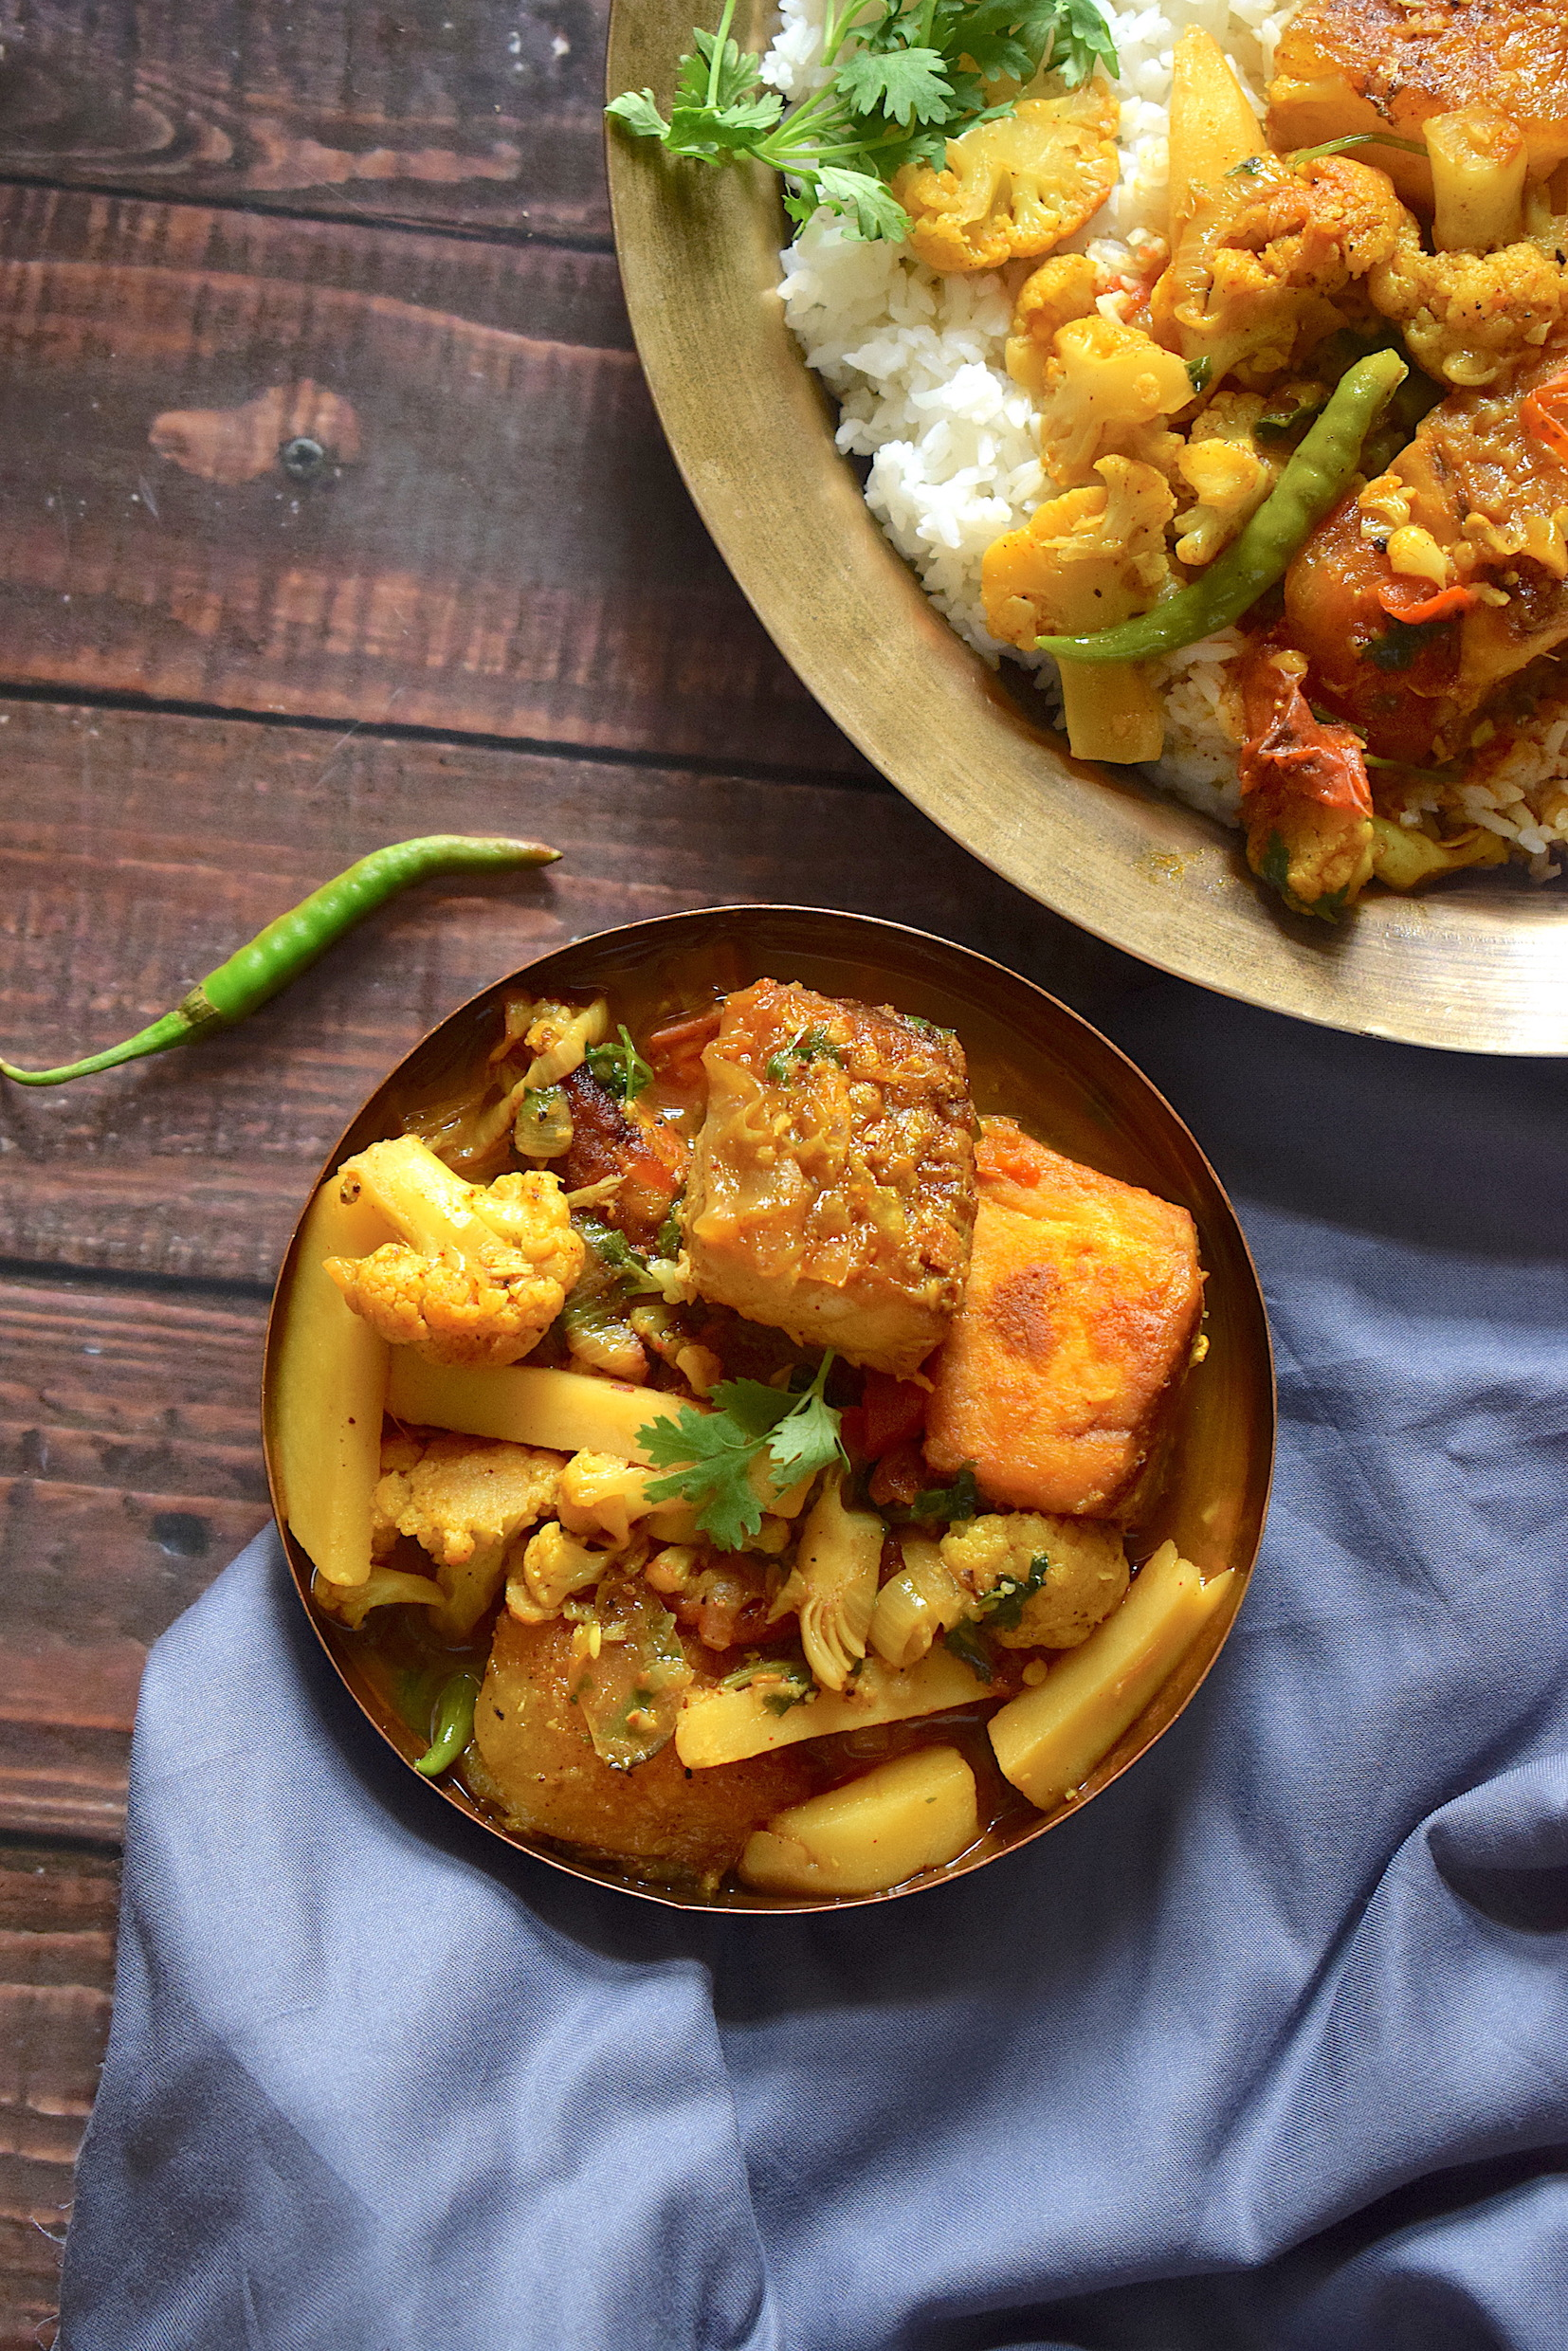 assamese fish curry with cauliflower and potatoes